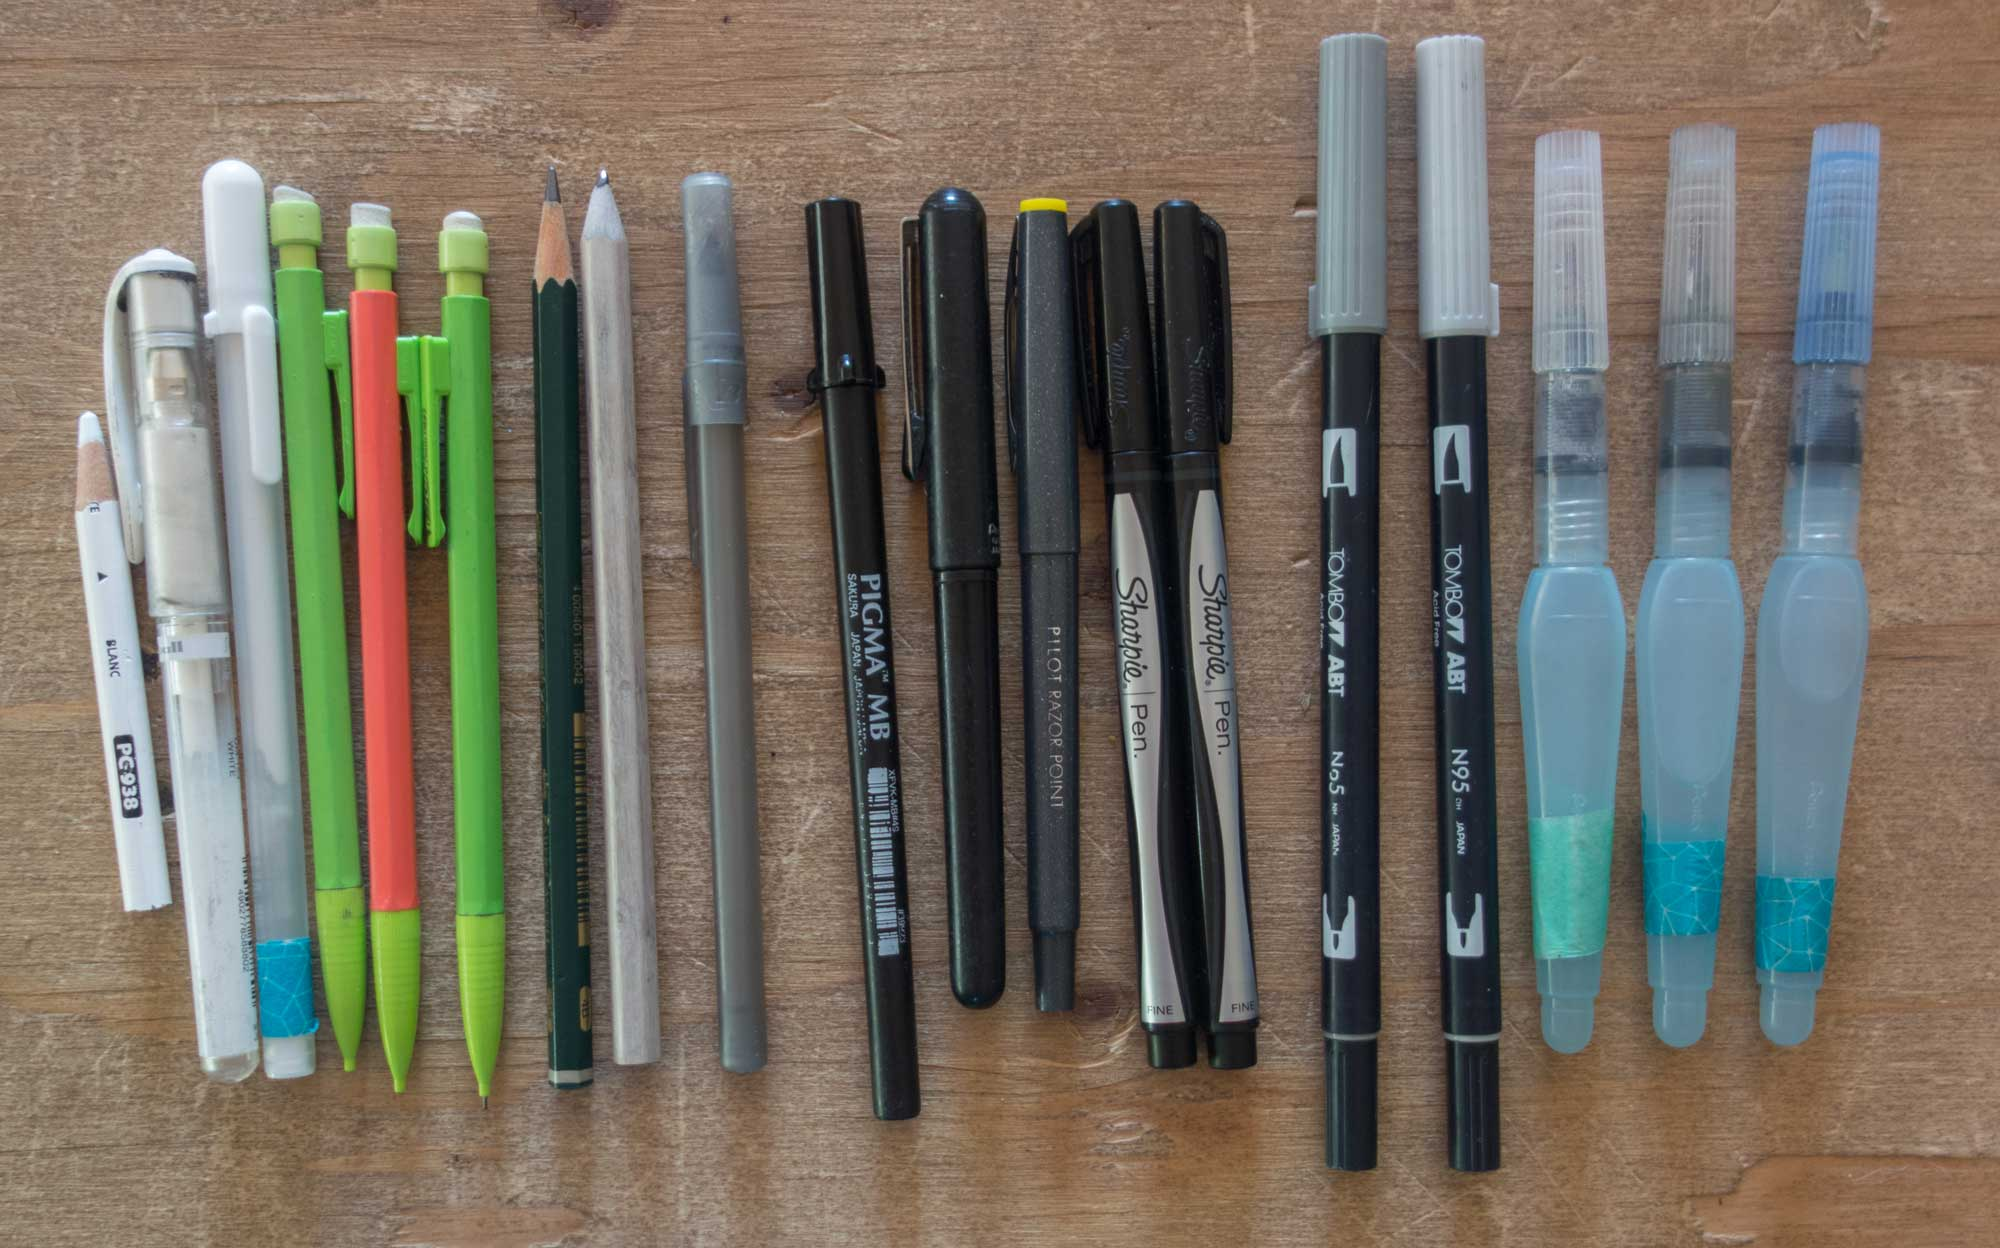 Favorite pens, pencils, and brushes